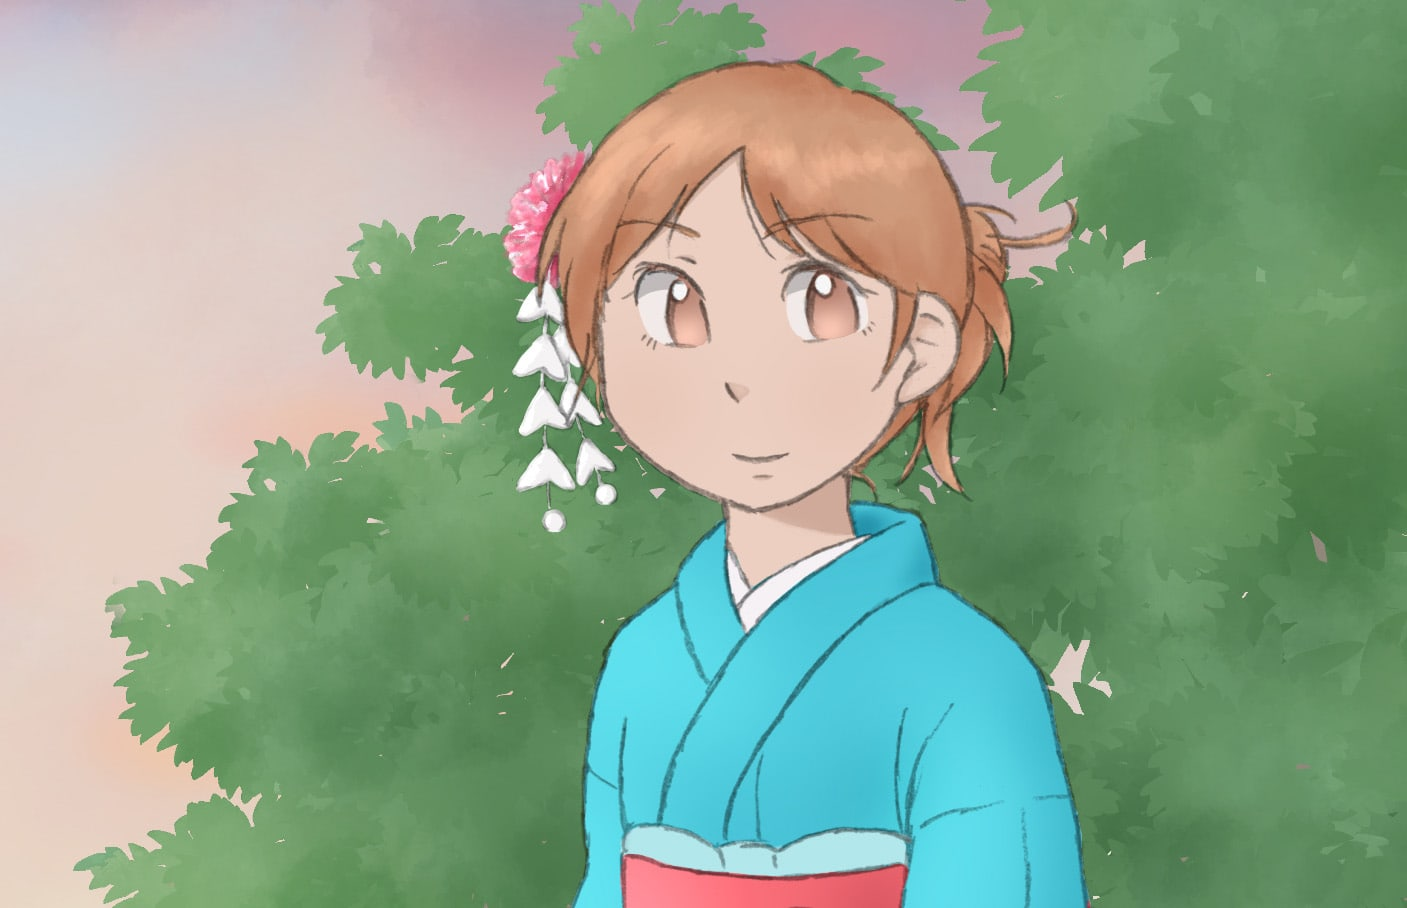 a drawing of a girl wearing kimono